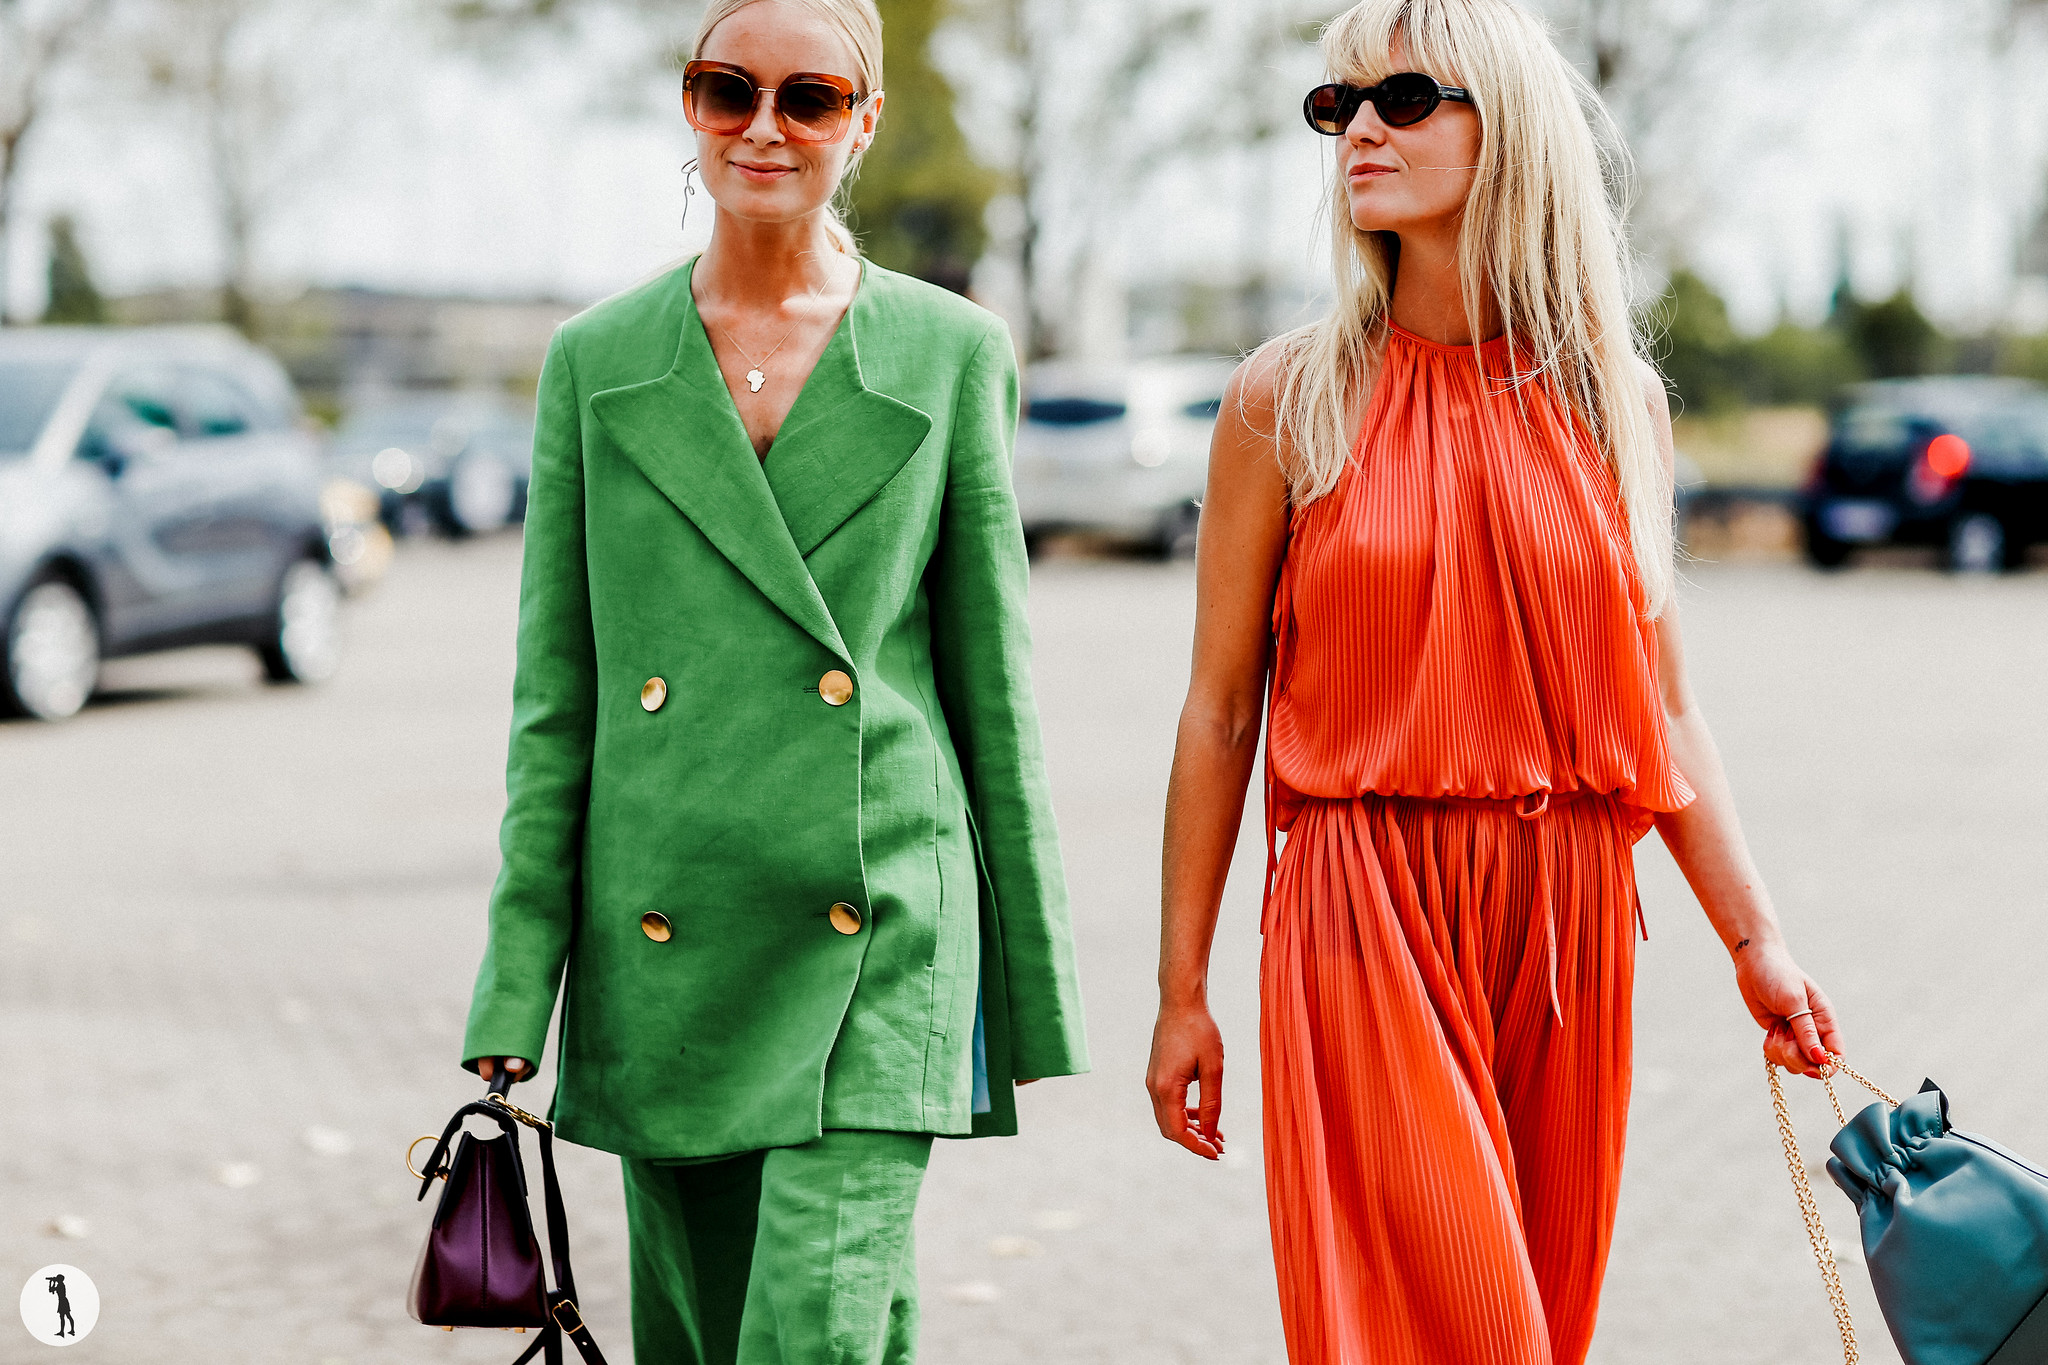 Thora Valdimars and Jeanette Friis Madsen - Copenhagen Fashion Week SS19 (3)